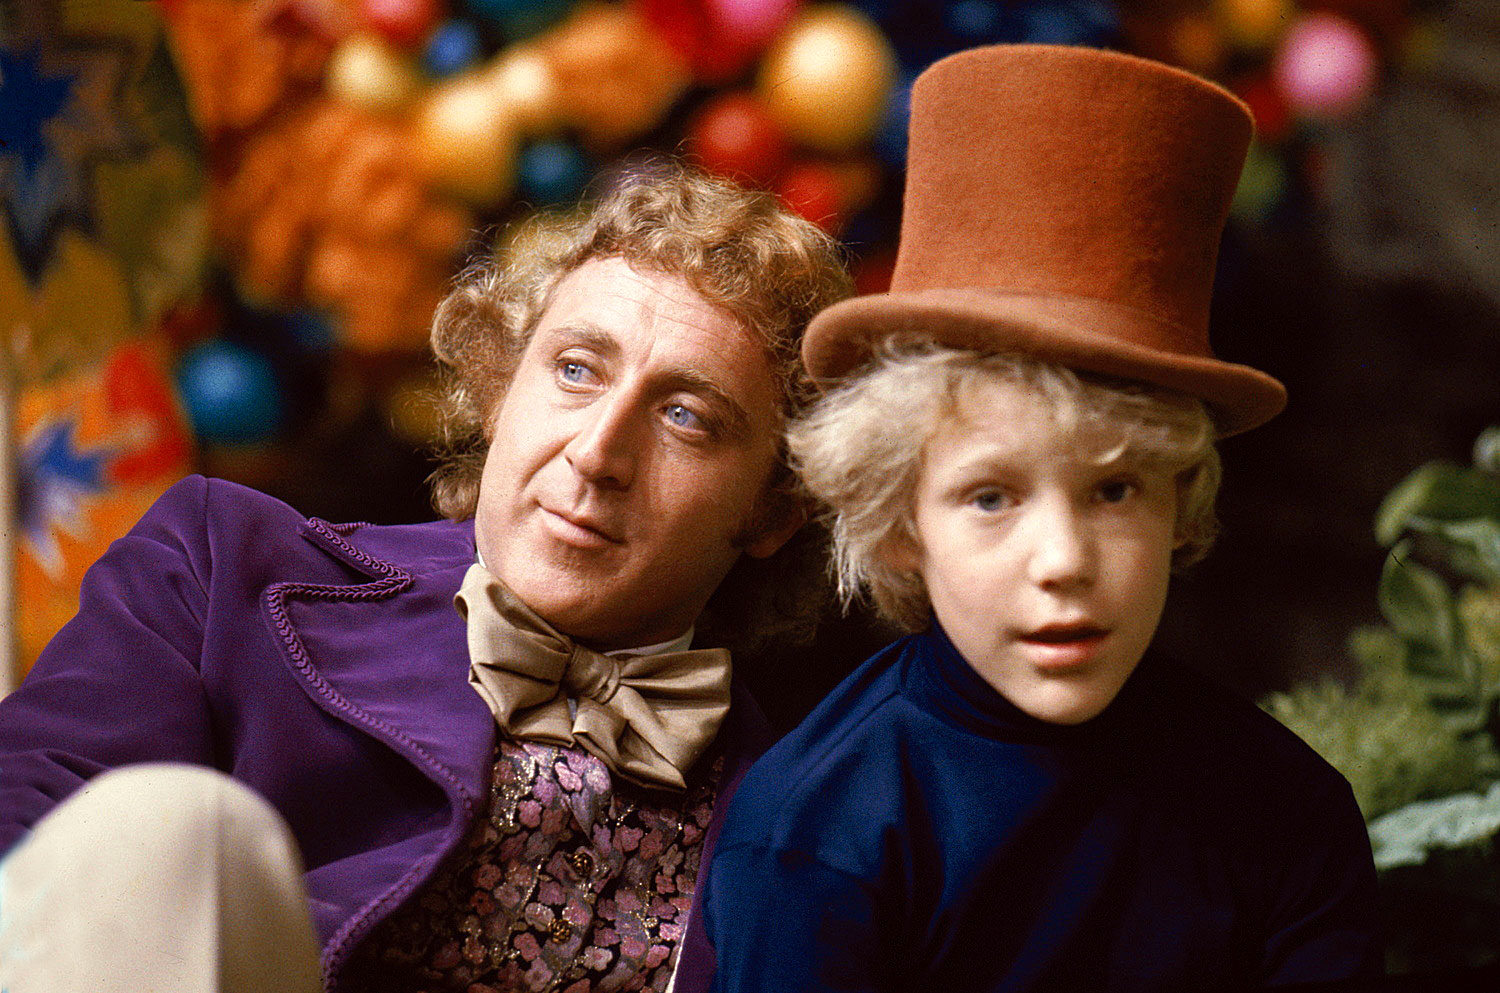 willy wonka The actress who played violet in willy wonka & the chocolate factory recently suffered a stroke that's left her in critical condition  and her family in dire straits a facebook group has .